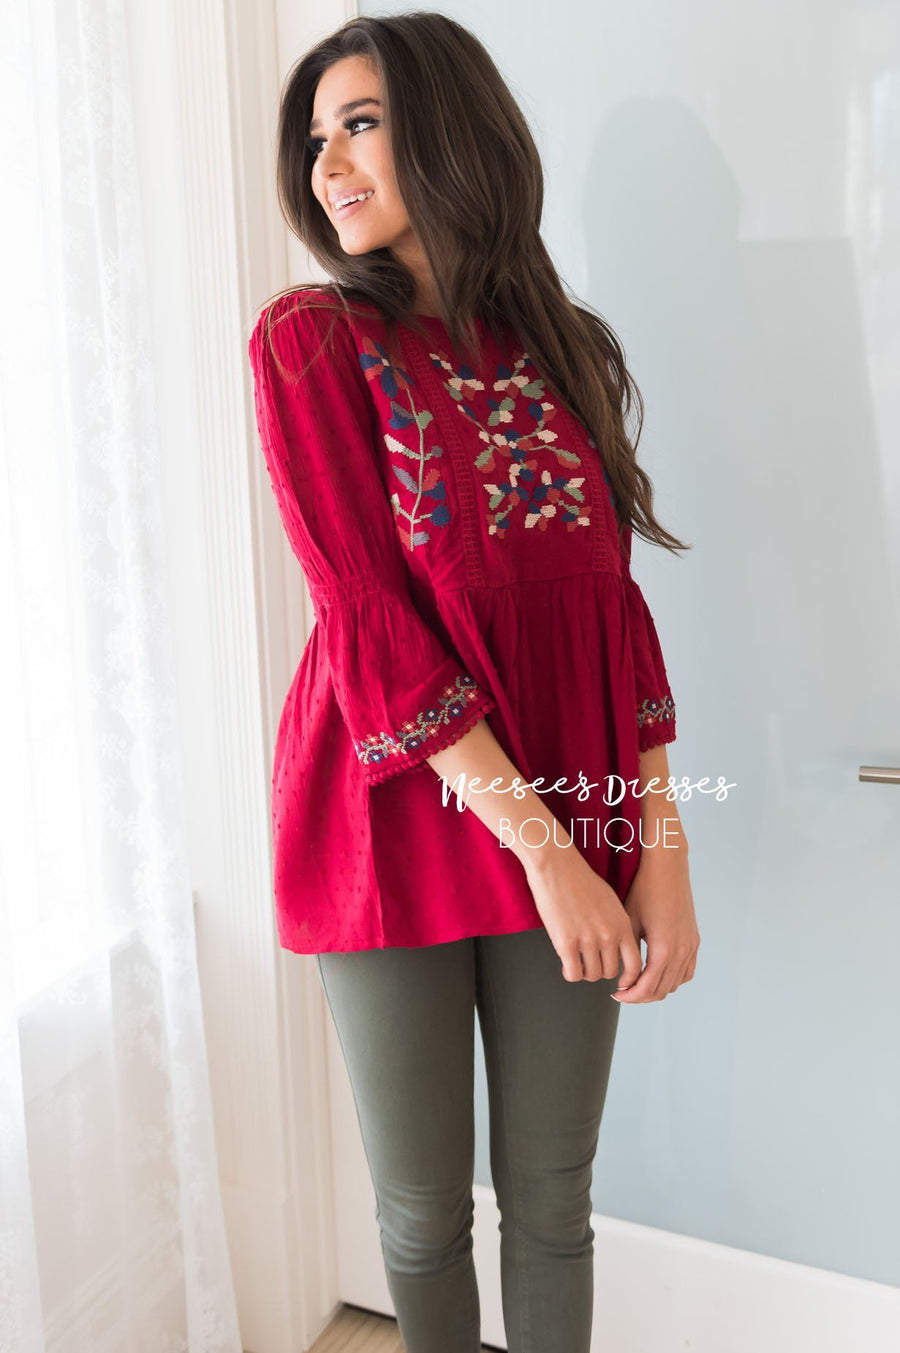 Looking Up Modest Embroidered Blouse